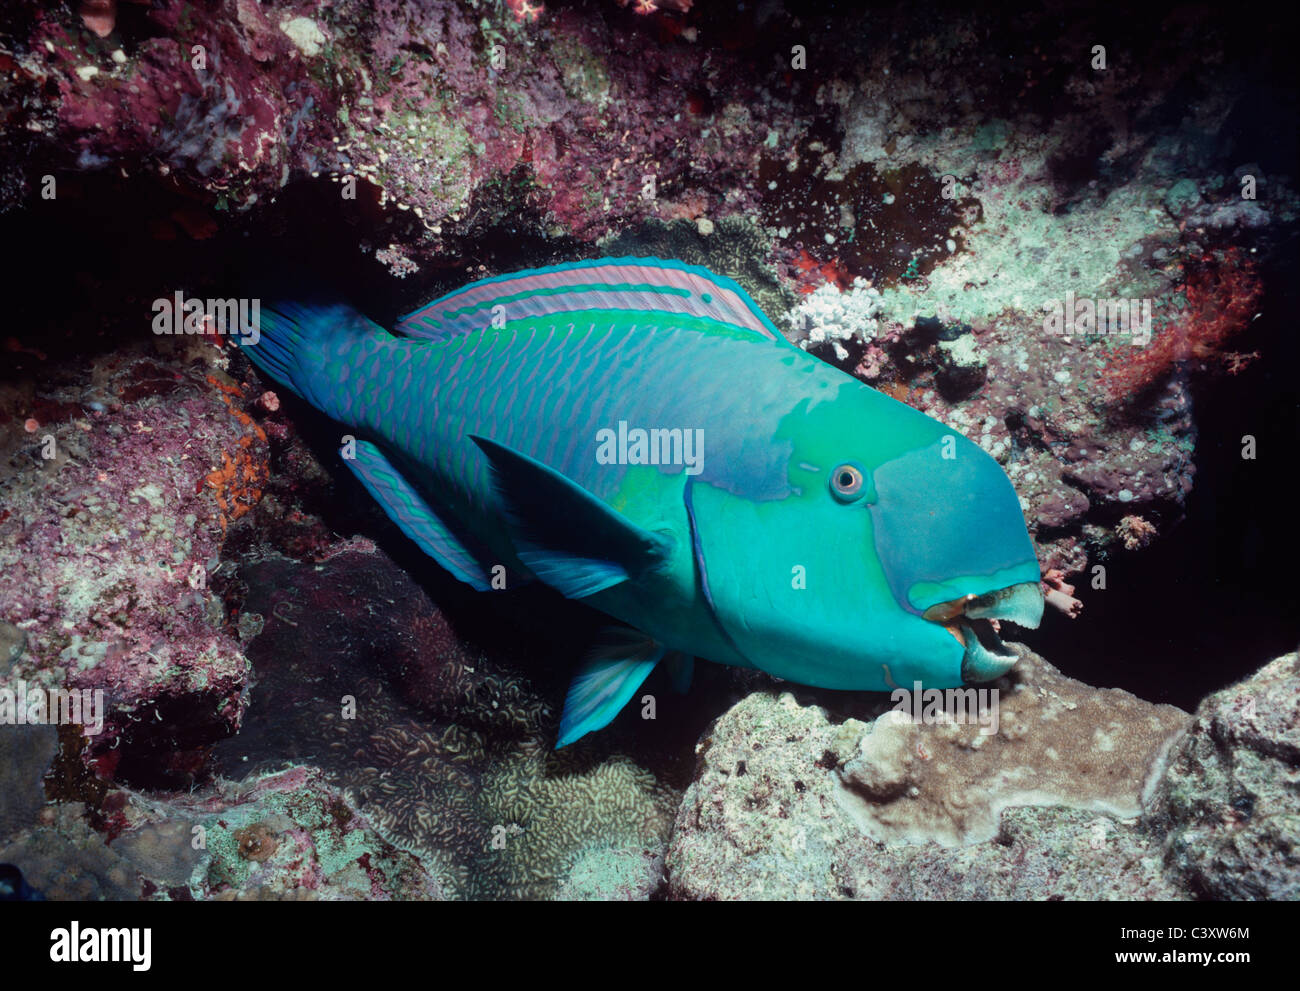 Male Steepheaded Parrotfish (Scarus gibbus) sleeps in protective mucus membrane in a coral cave at night. Egypt, - Stock Image